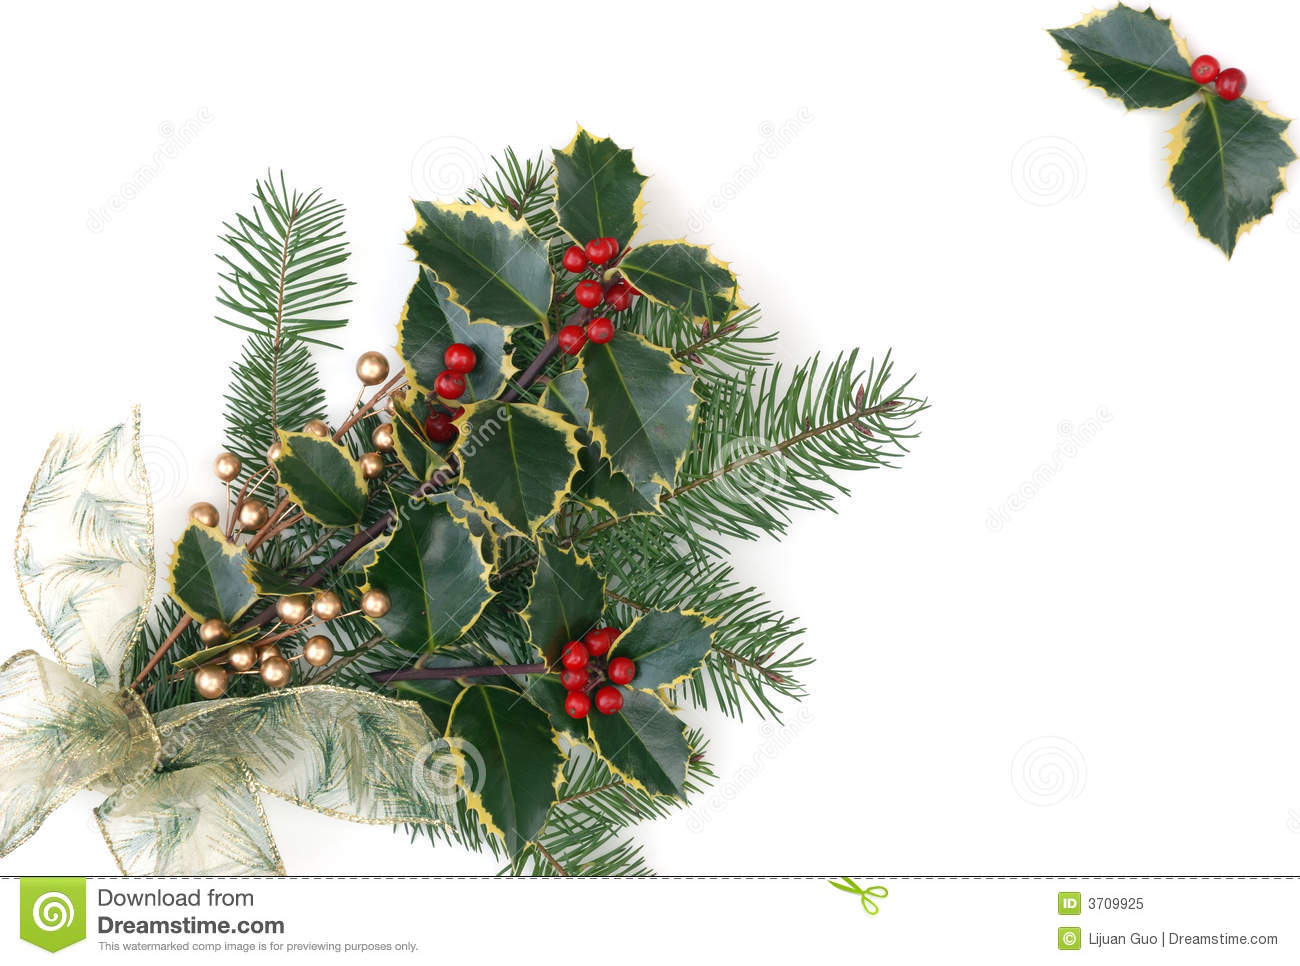 Christmas Decorations With Holly Berries Stock Image - Image of ...